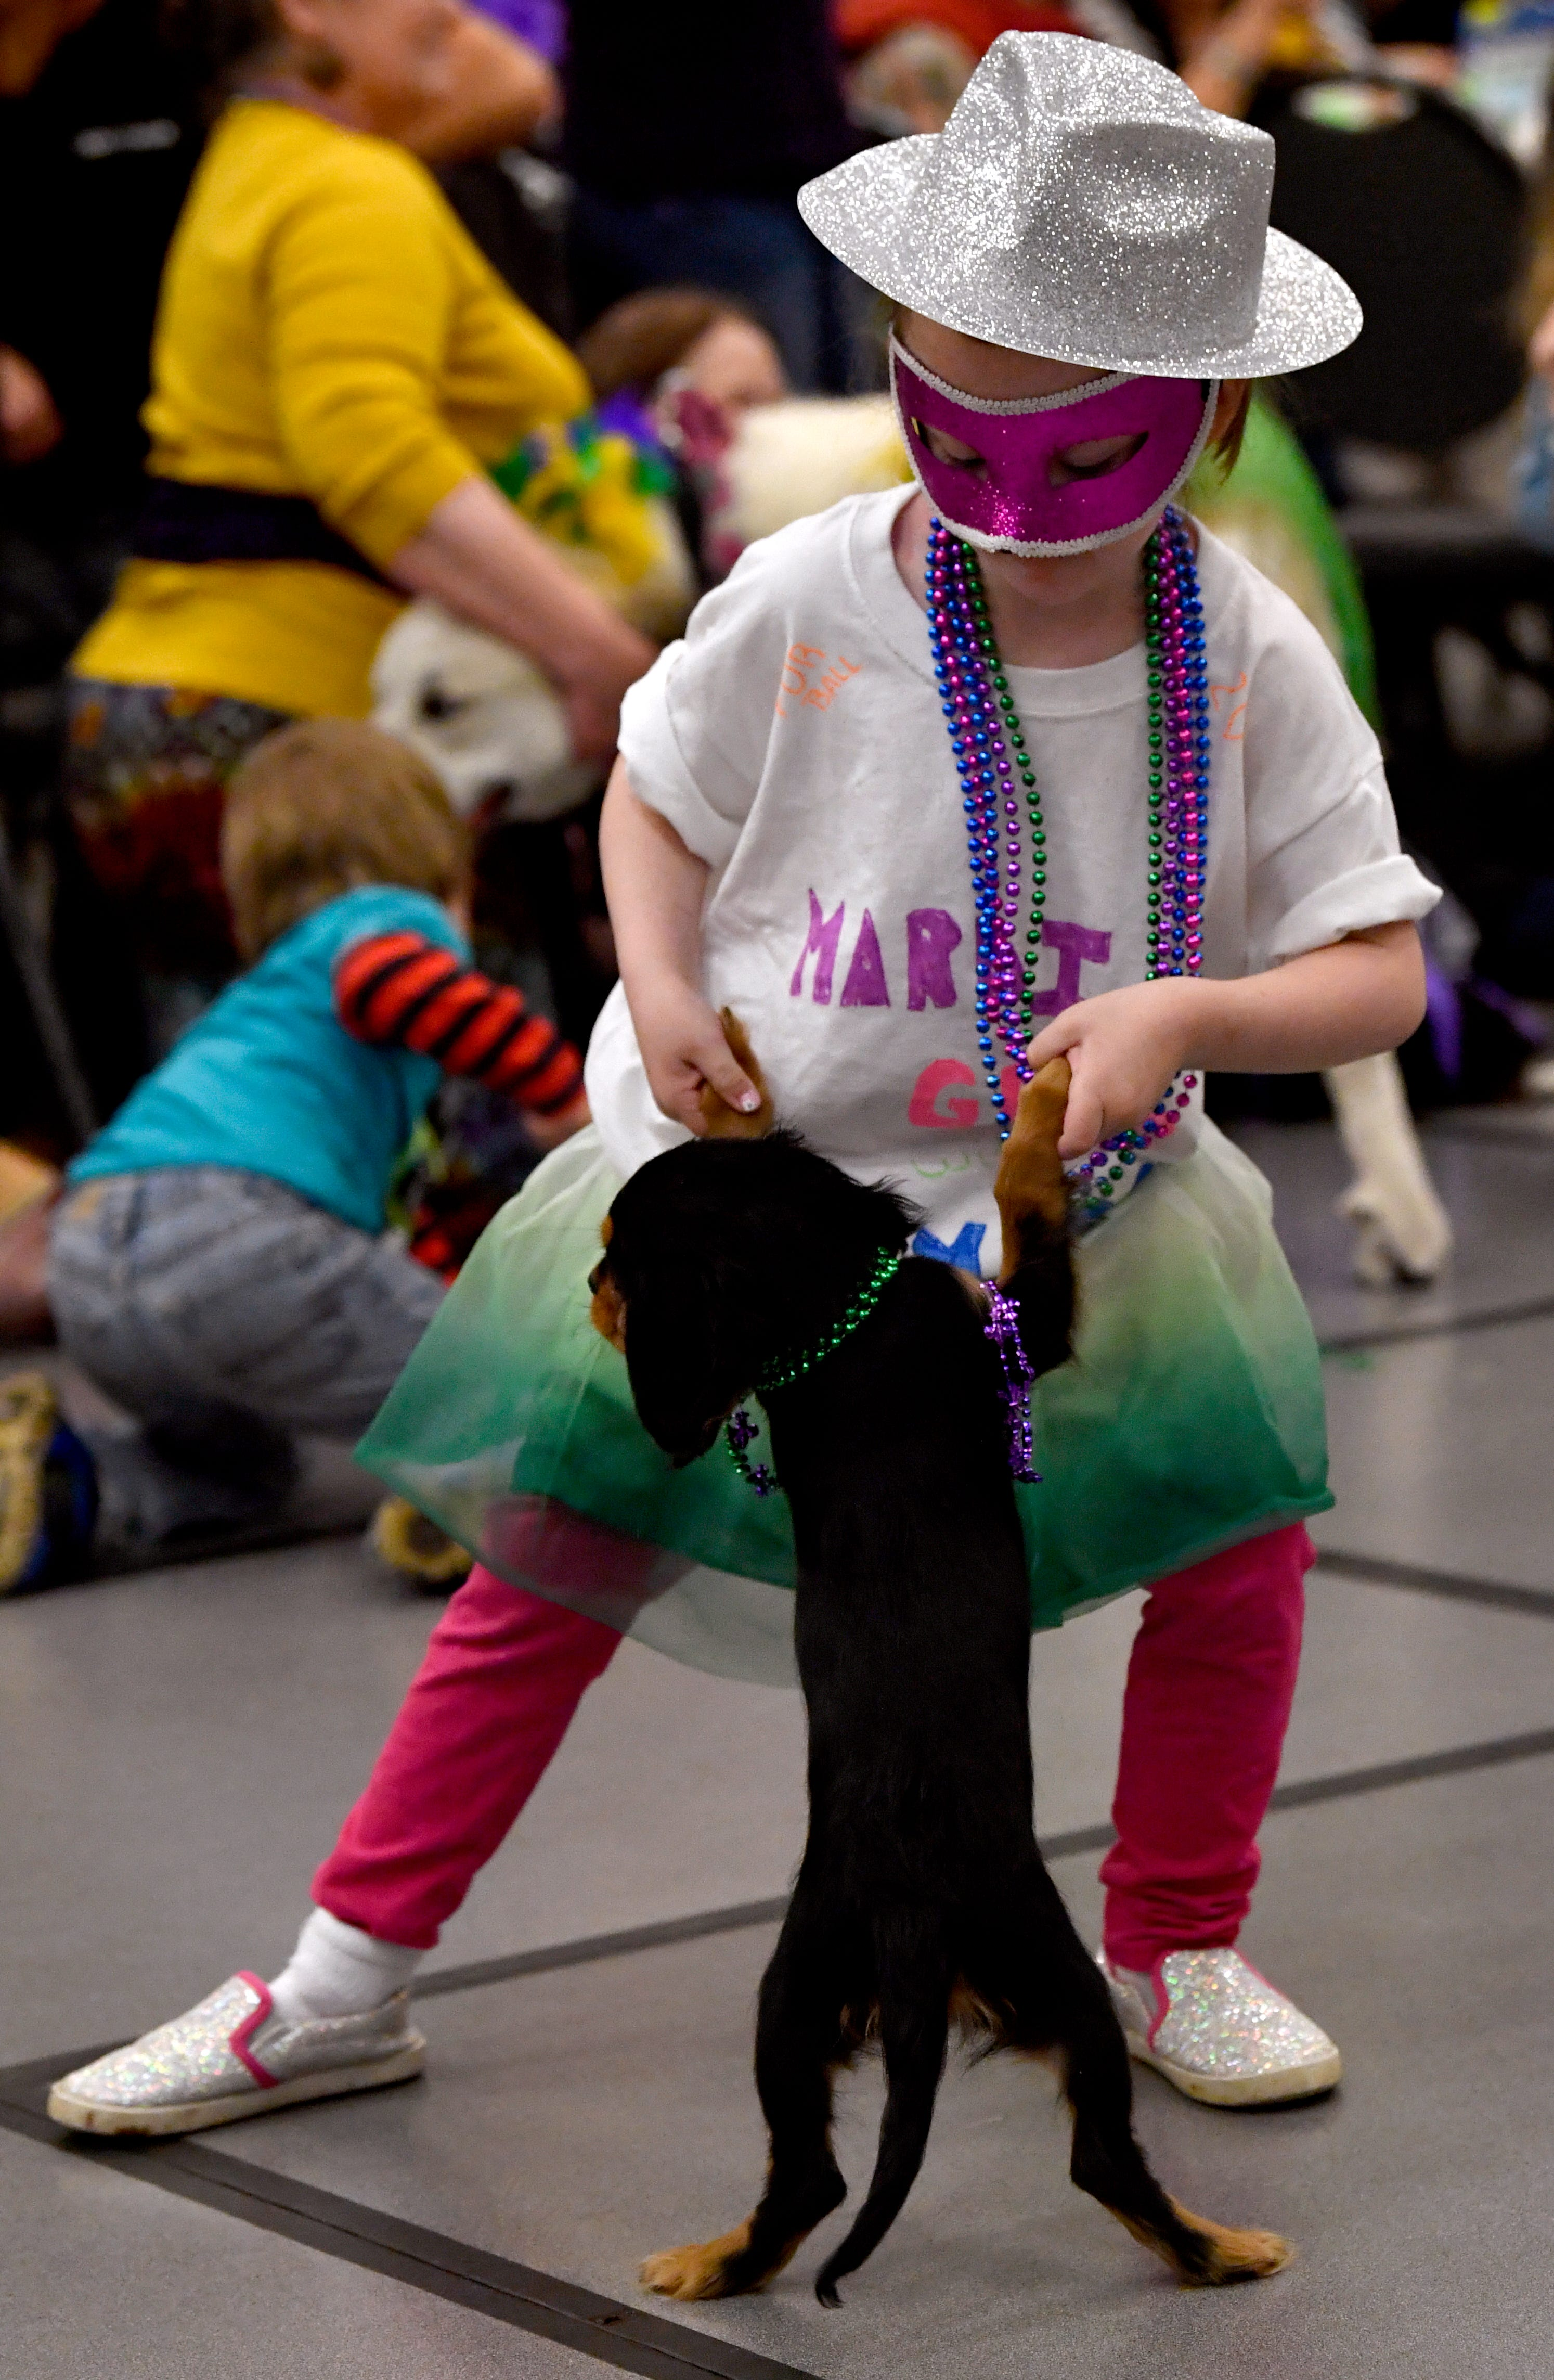 Kynzie Colmery, 6, dances with her Cavalier King Charles Spaniel, Reesie, during the kid's dance contest at the Fur Ball. Reesie and Kynzie took the third-place trophy.